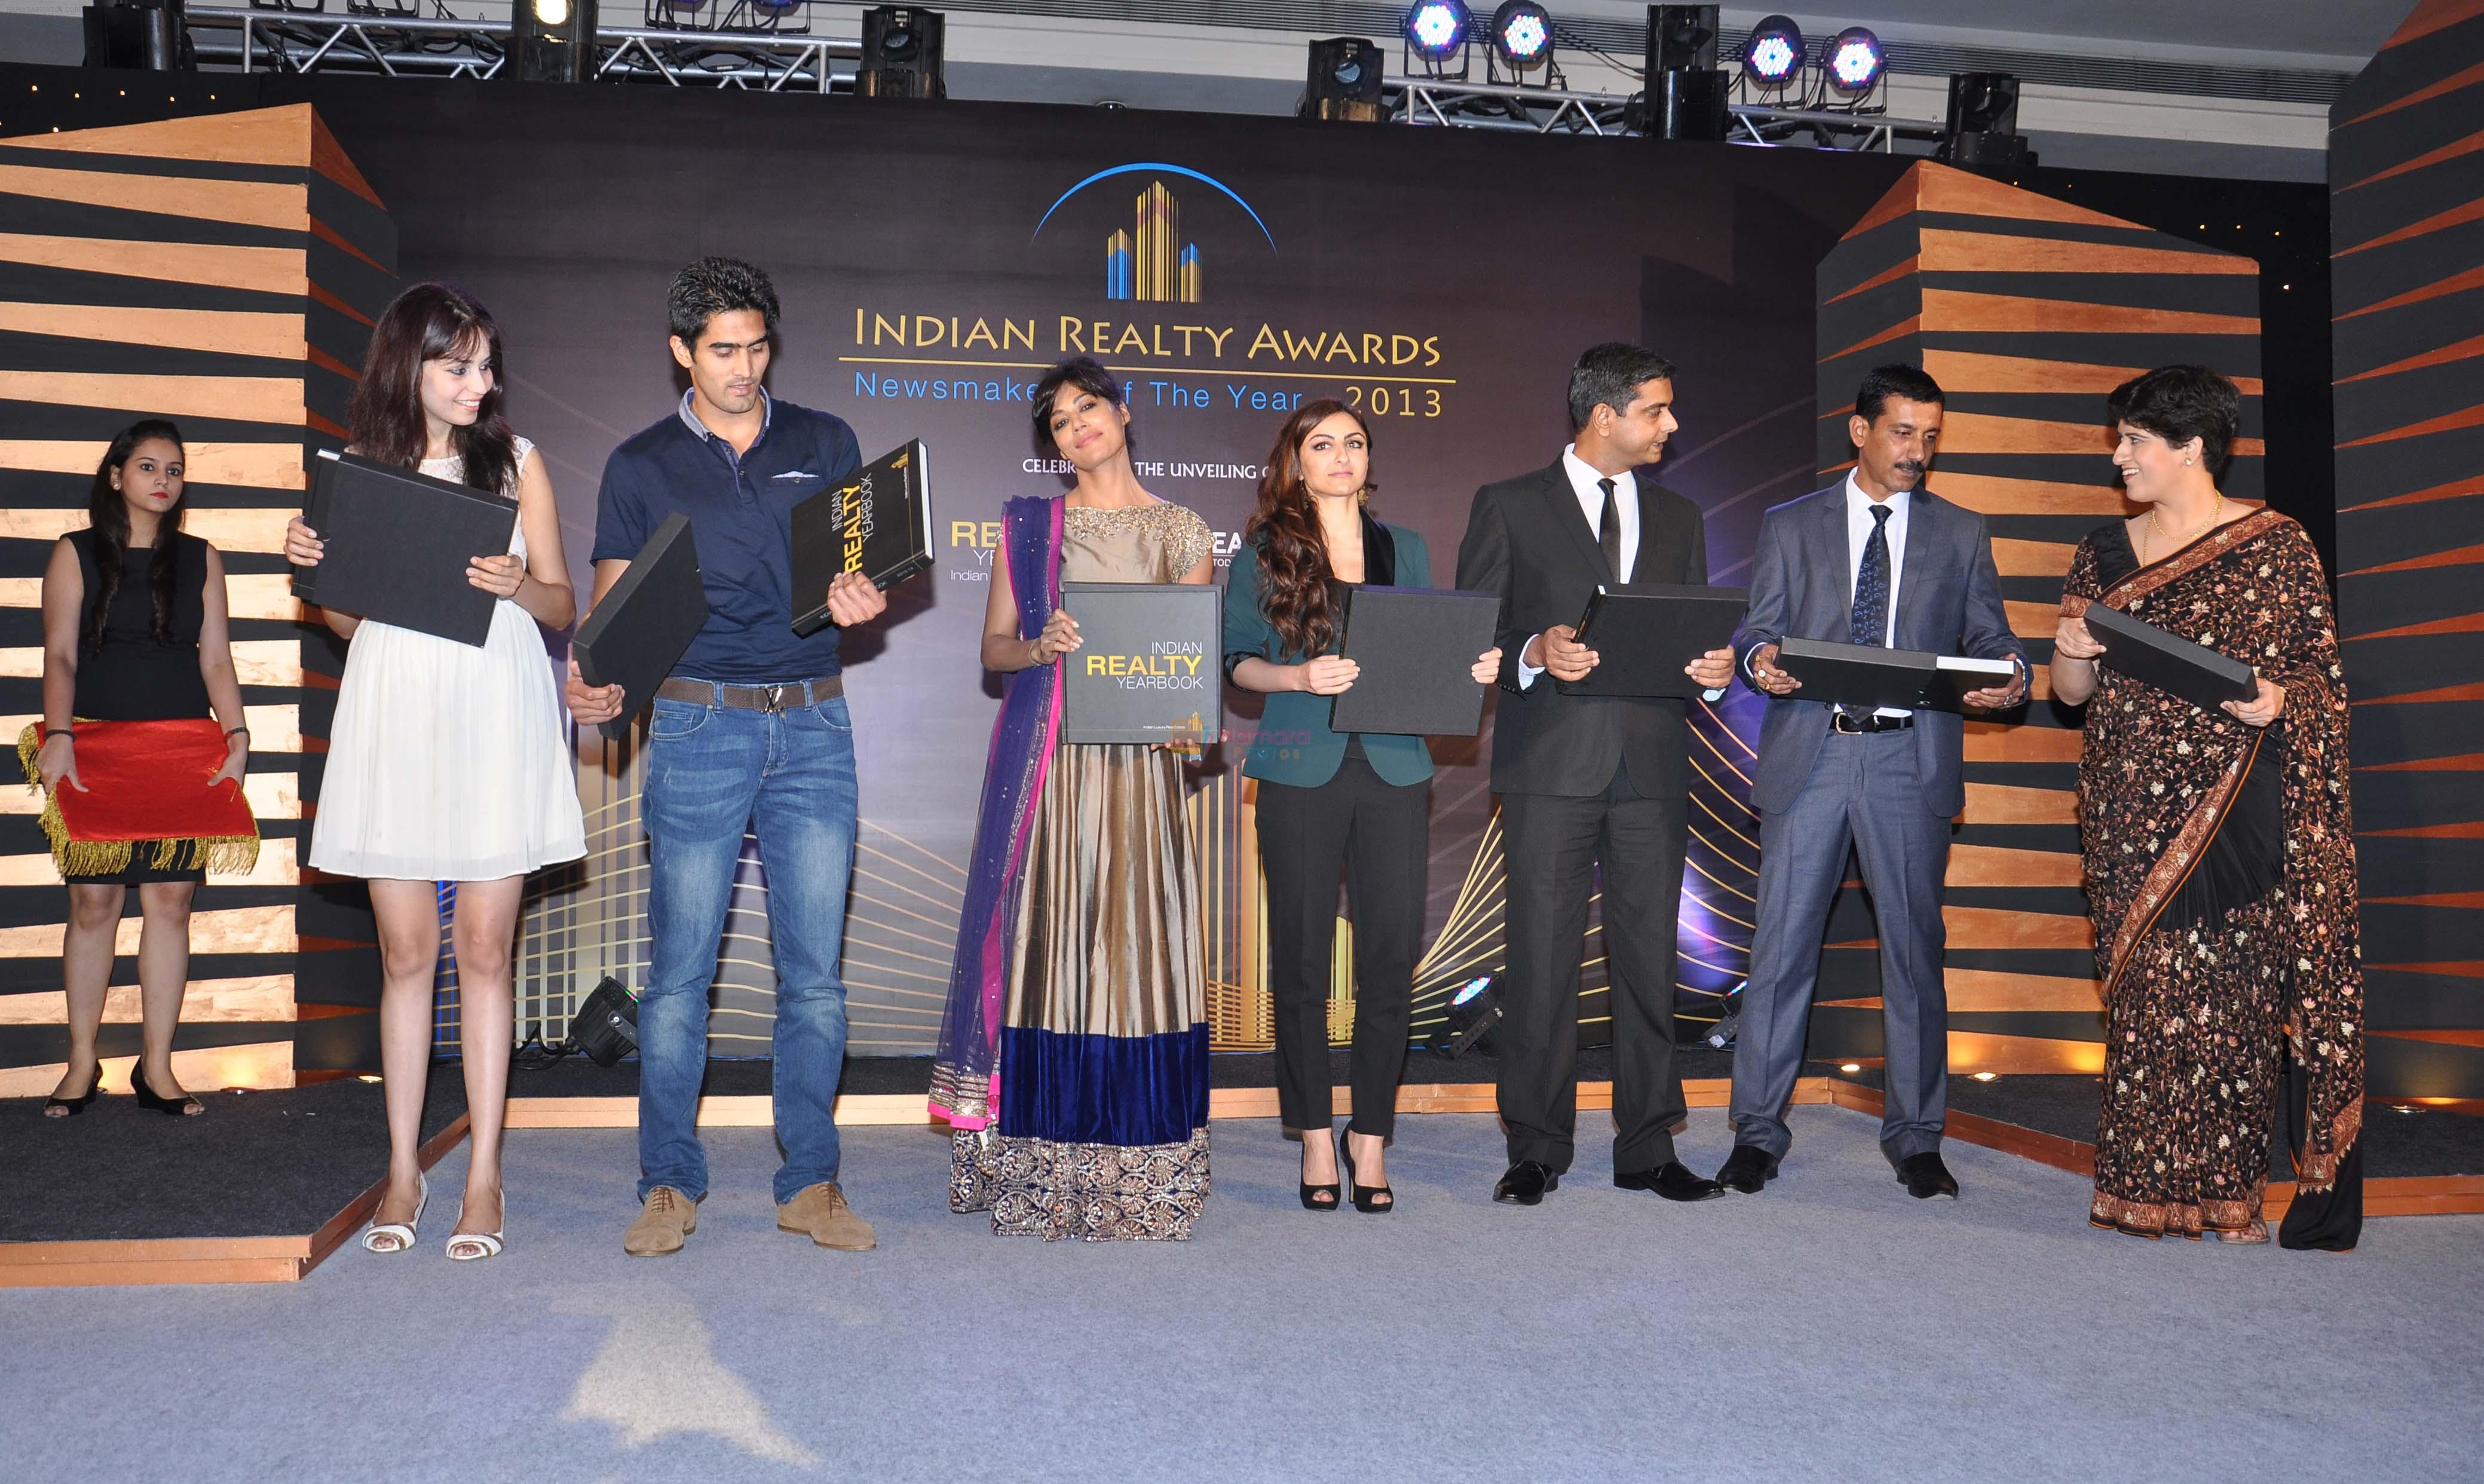 Chitrangada Singh, Soha Ali Khan, Vijender Singh launch India Realty Yearbook & Real Leaders at The premier Indian Realty Awards 2013 in New Delhi on 8th Oct 2013